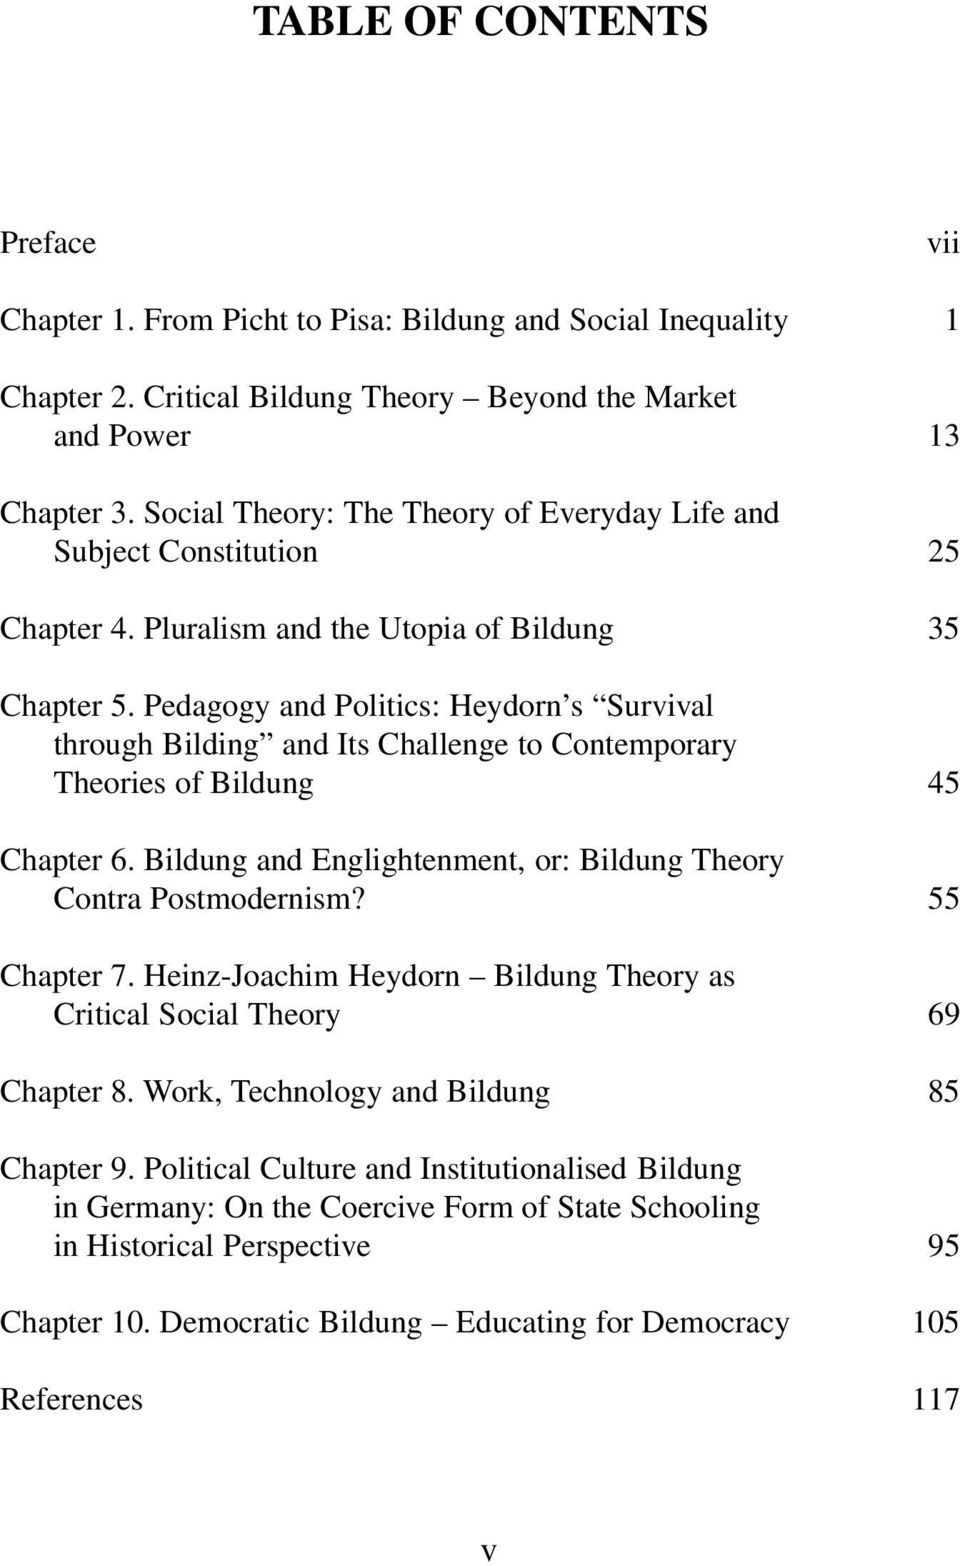 Pedagogy and Politics: Heydorn s Survival through Bilding and Its Challenge to Contemporary Theories of Bildung 45 Chapter 6. Bildung and Englightenment, or: Bildung Theory Contra Postmodernism?